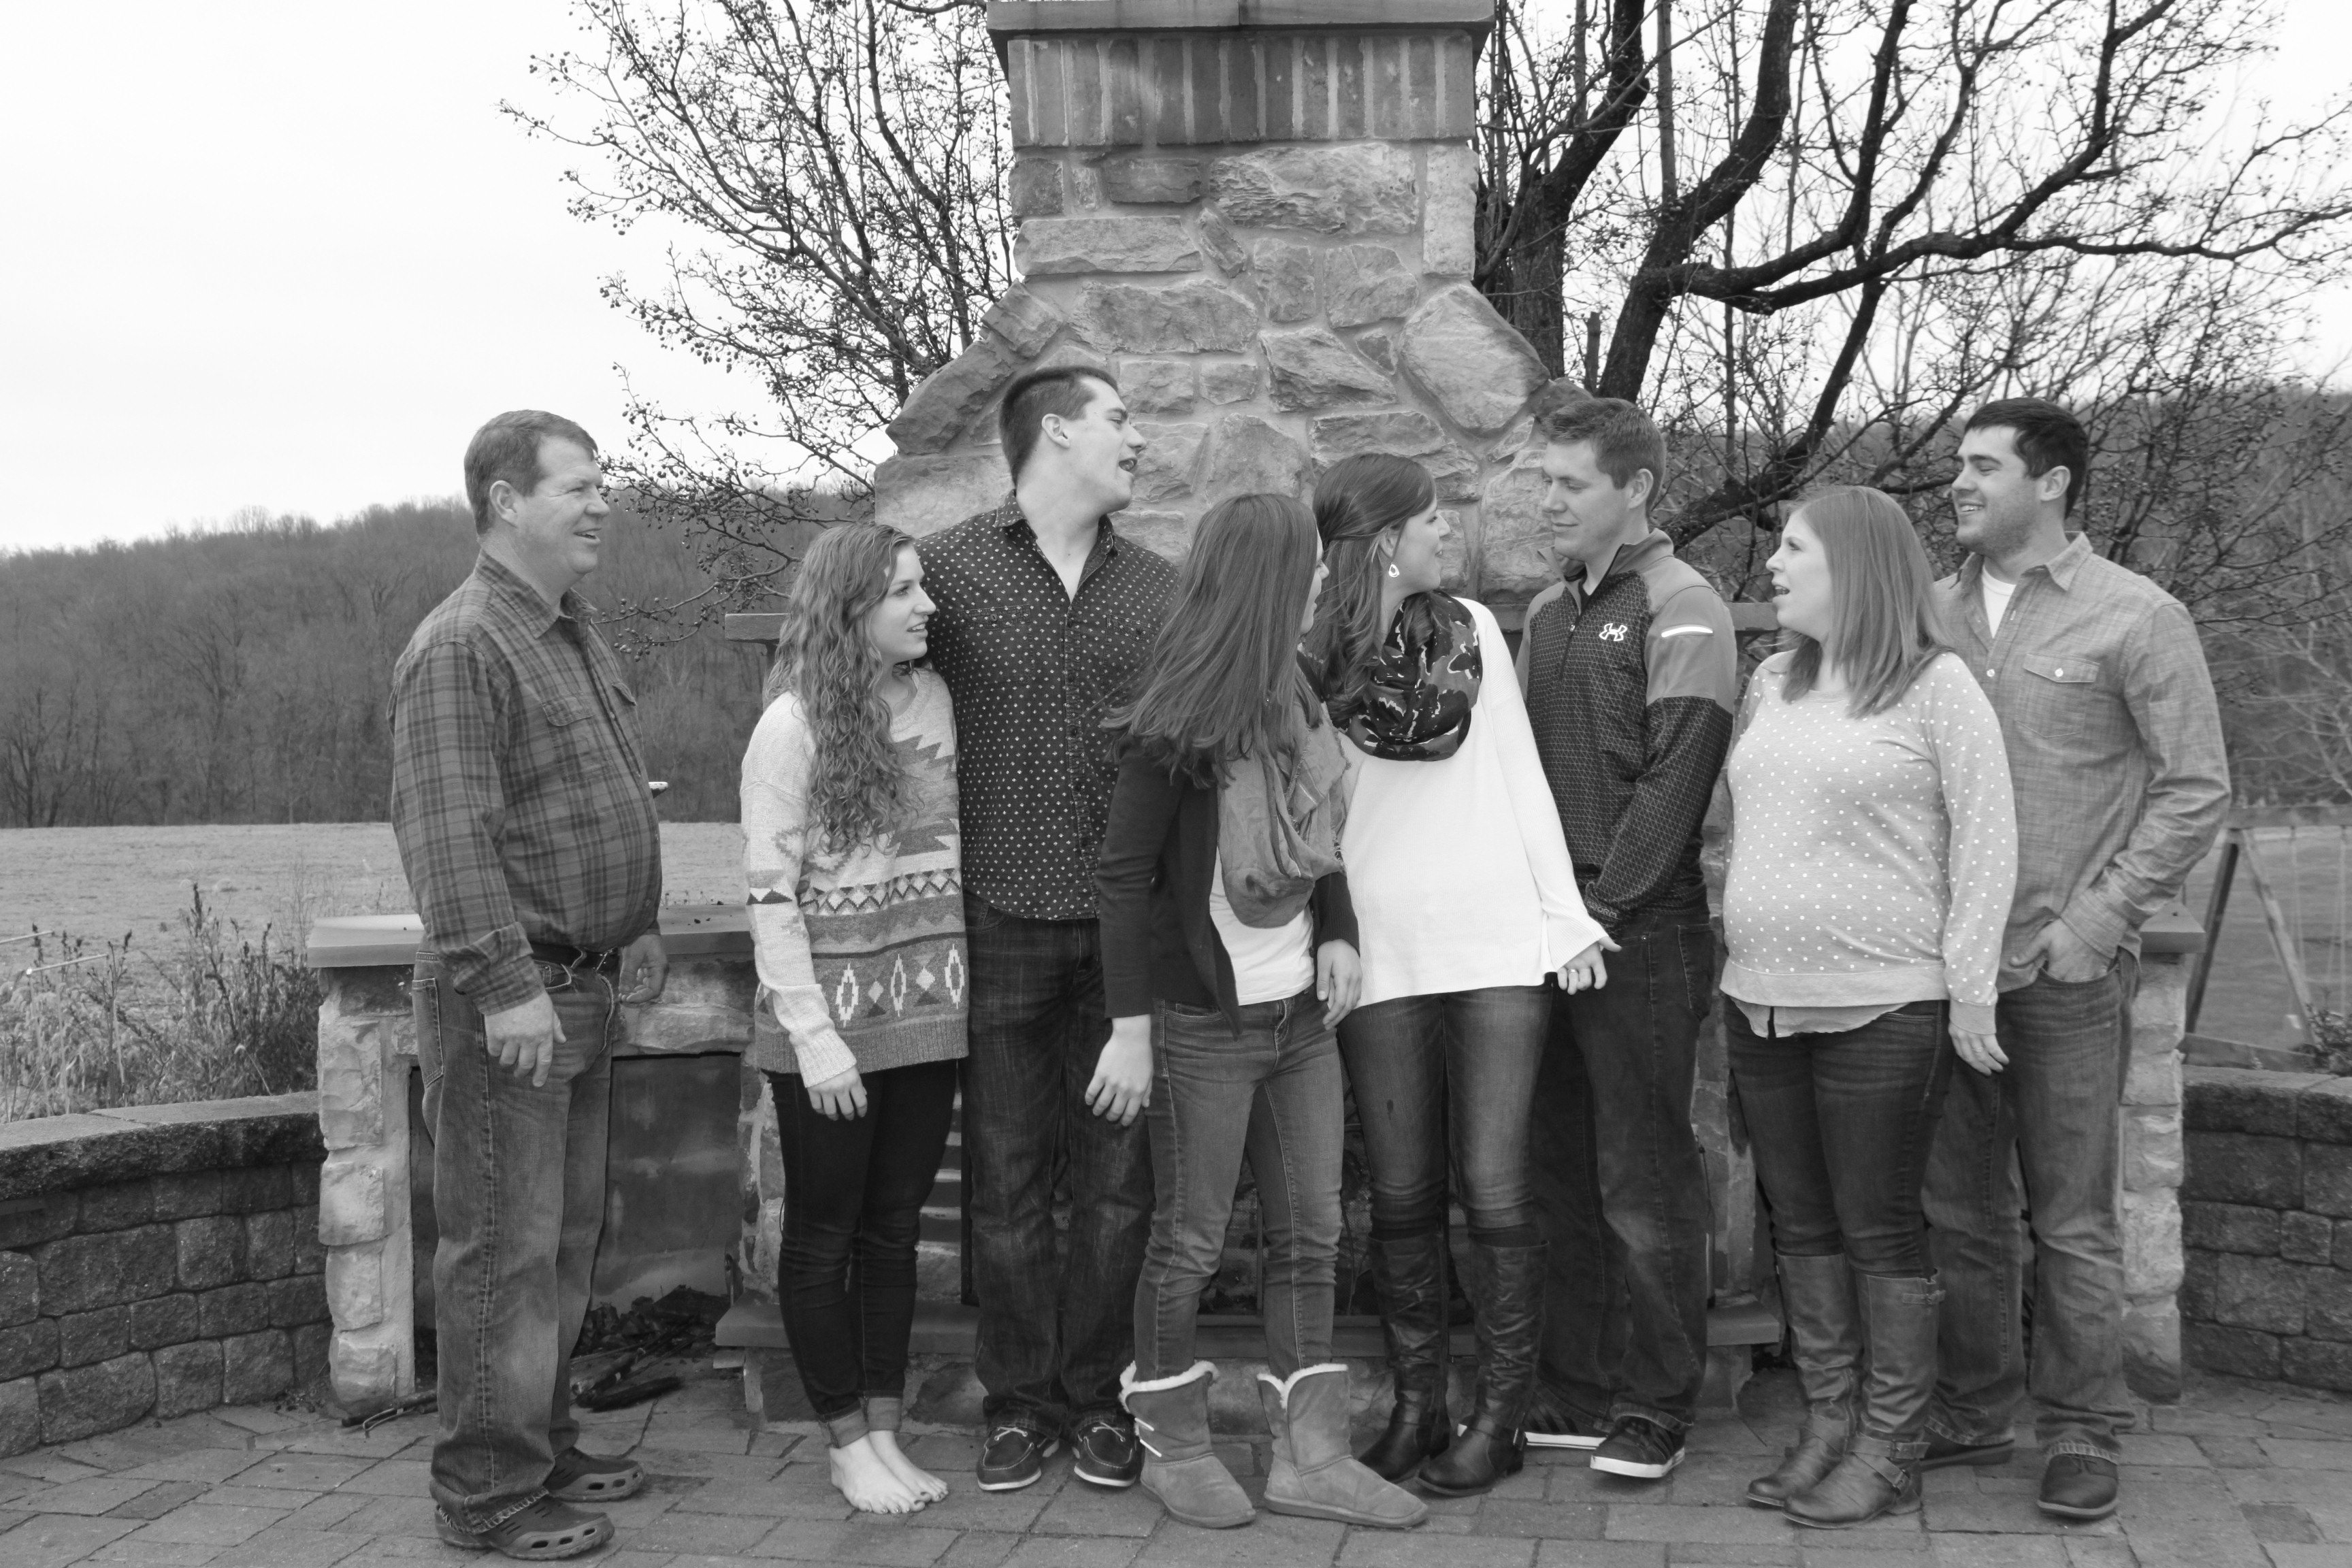 One of our attempts at a family photo over the holidays :)